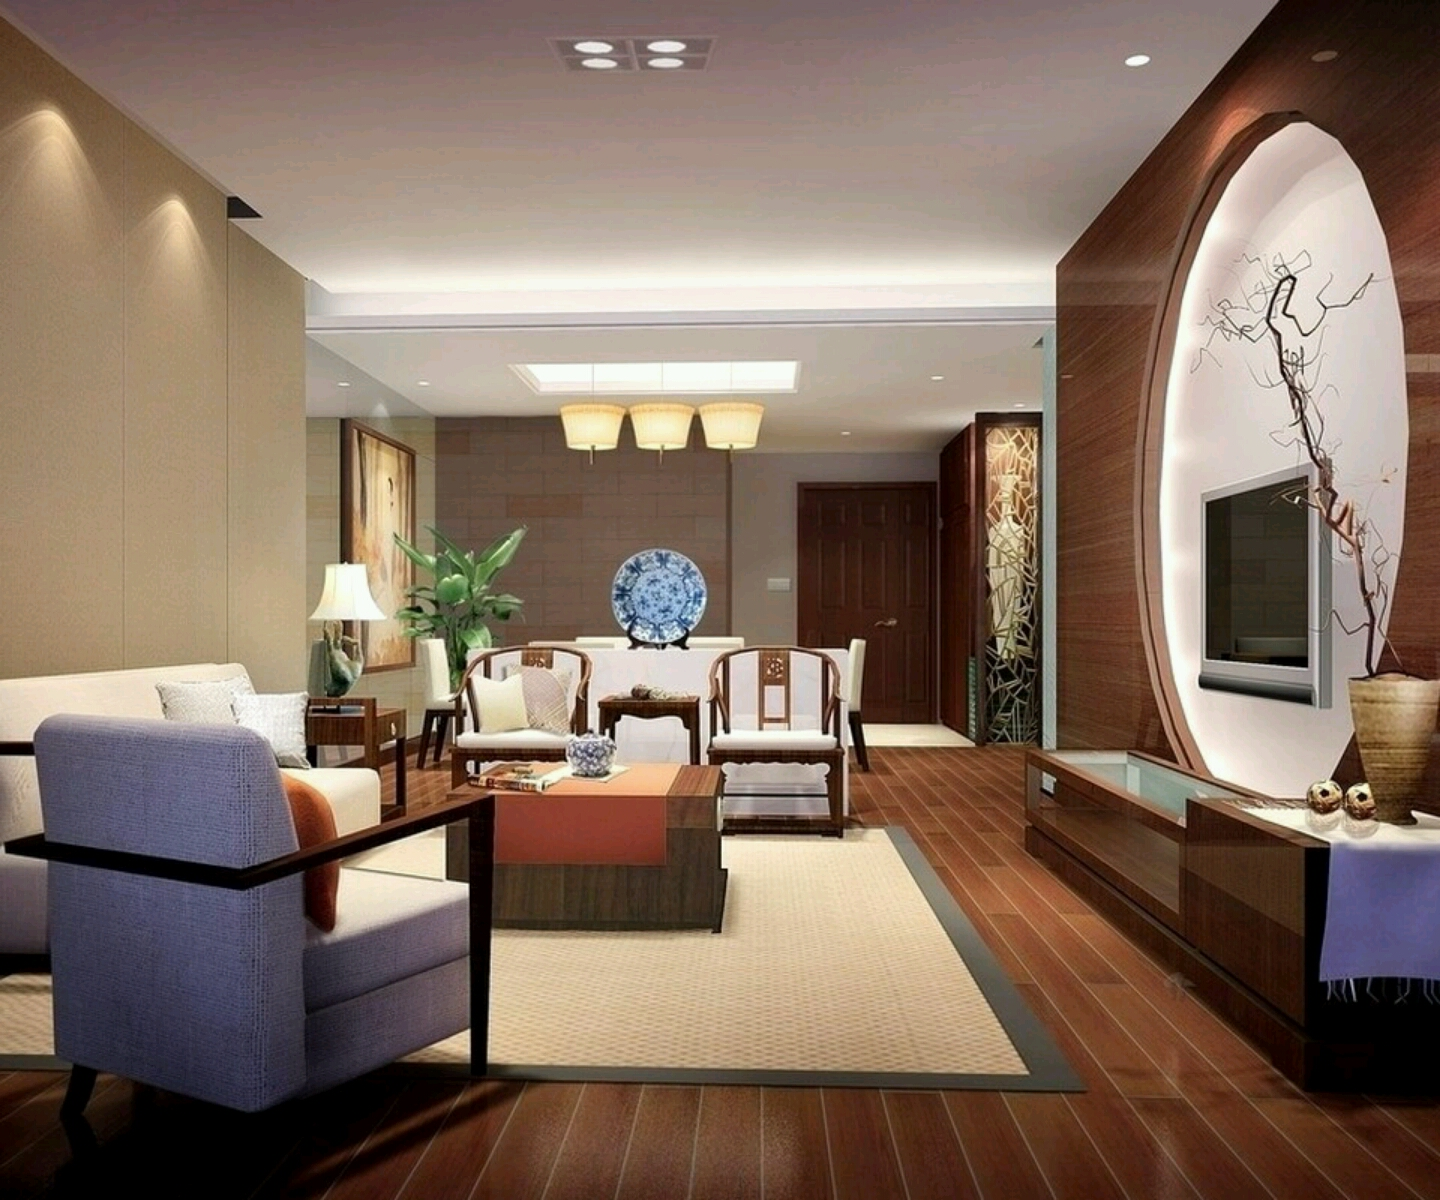 Luxury homes interior decoration living room designs ideas - Interior design ideas contemporary living room decor ...